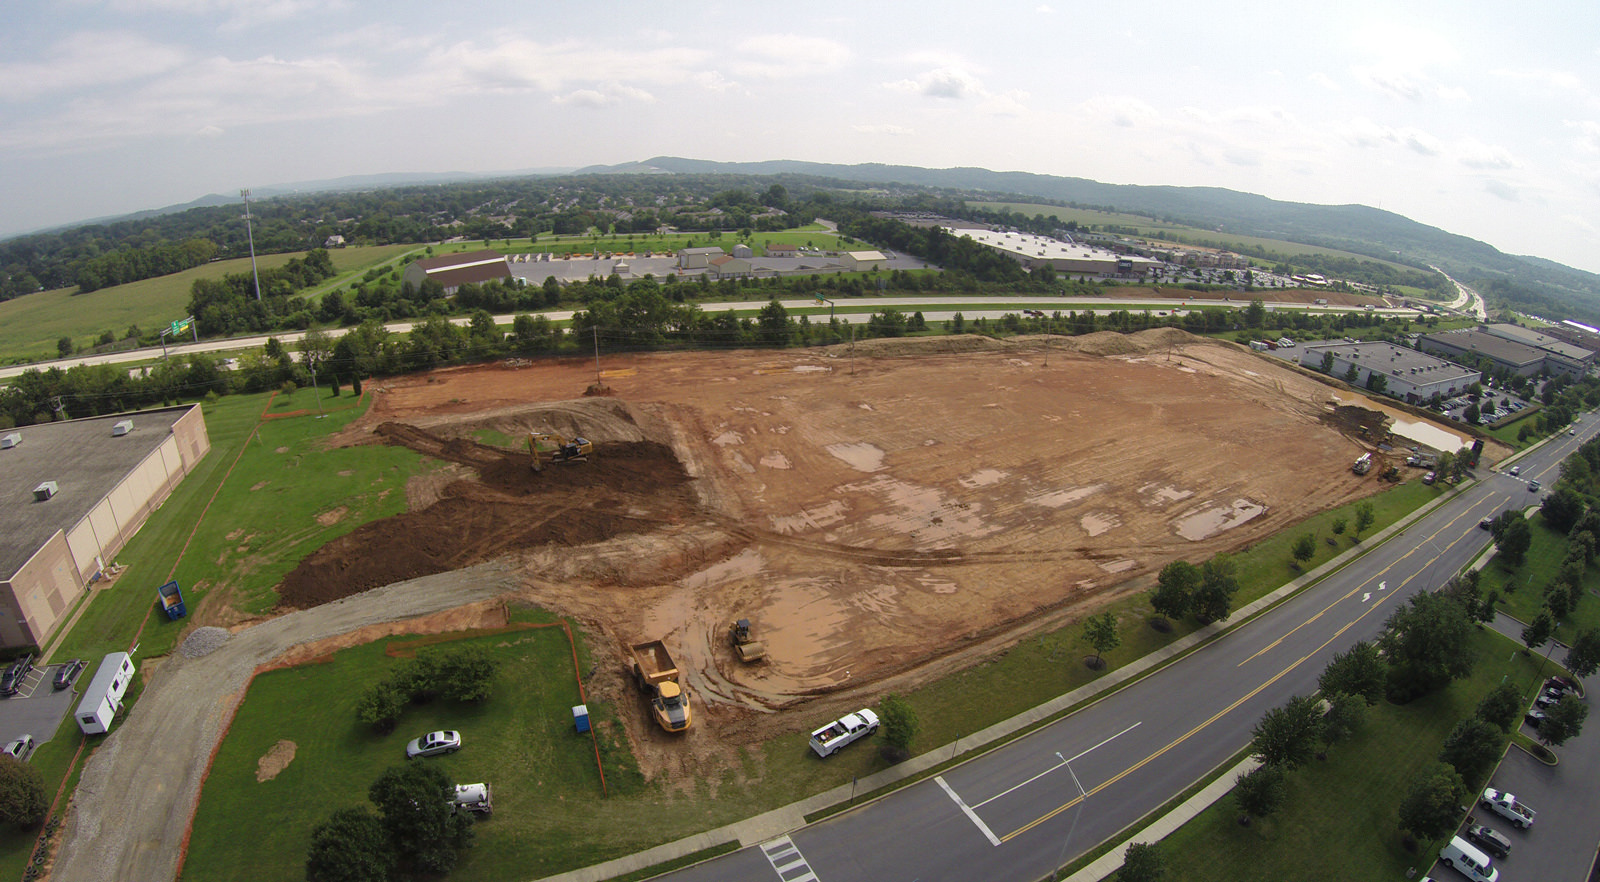 J.G. Petrucci Breaks Ground on 168,000 Square Feet of Industrial Space in the Lehigh Valley